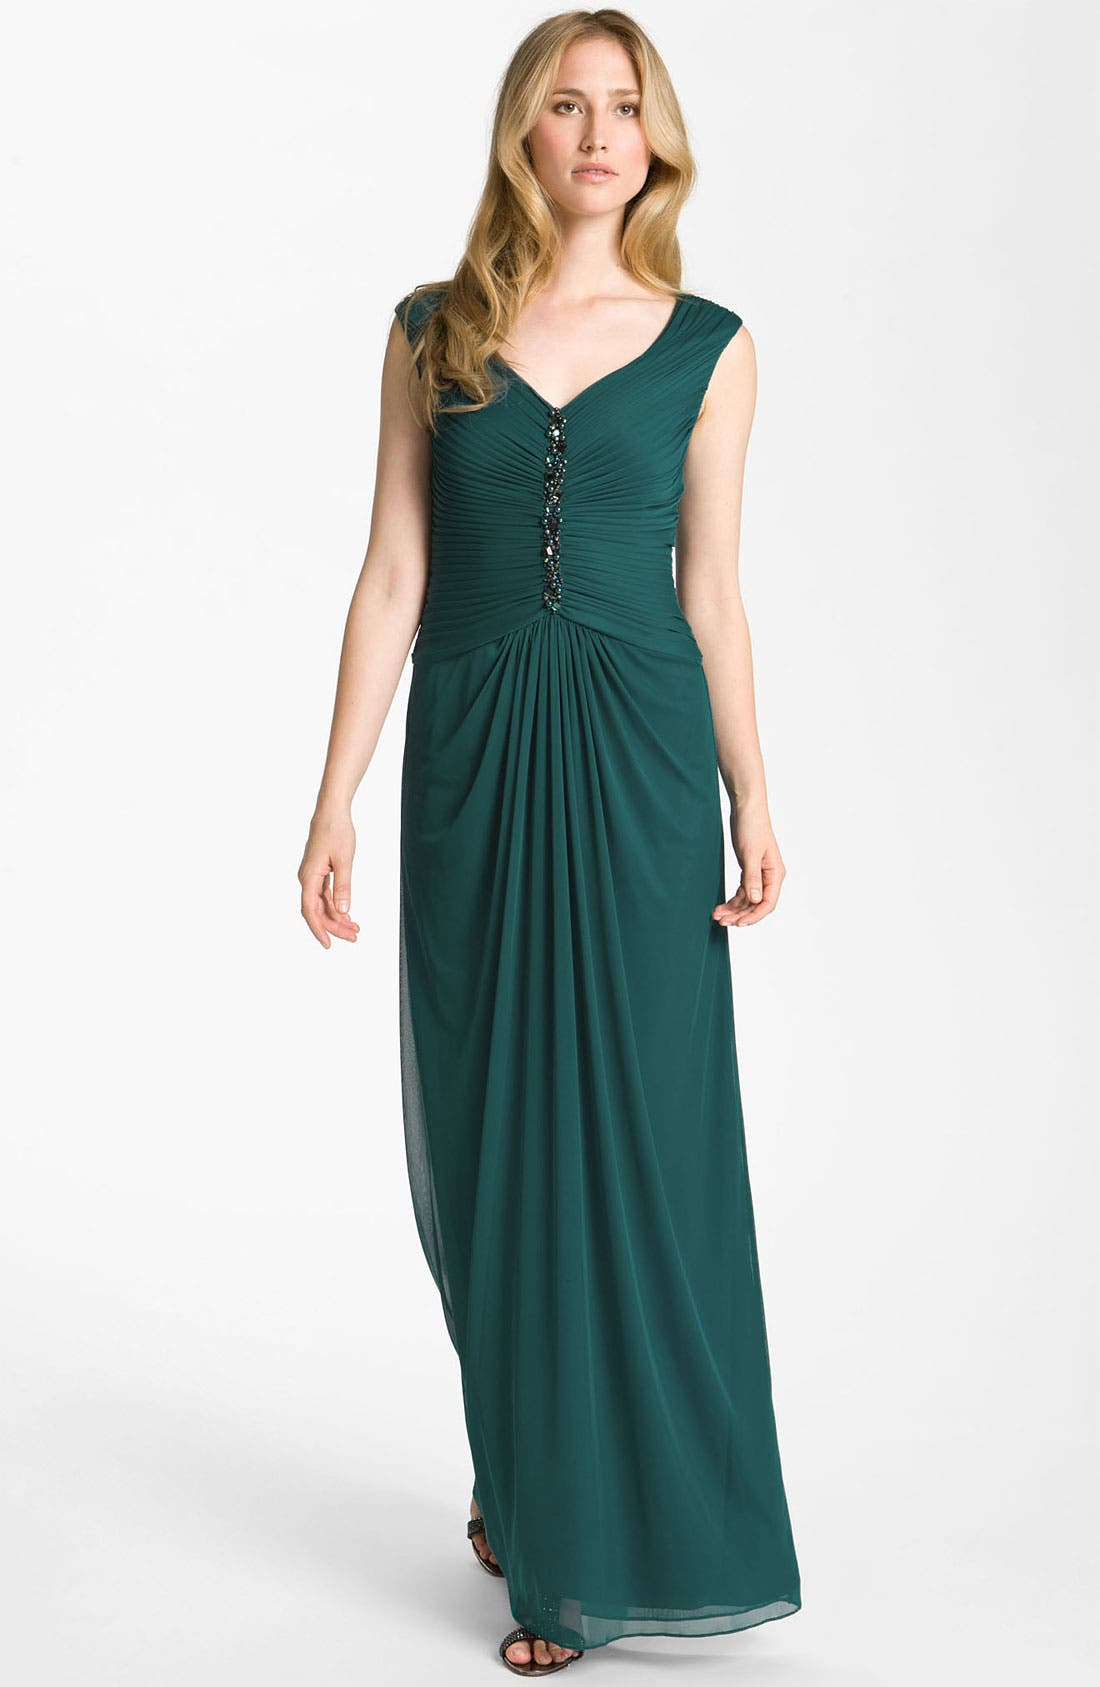 Main Image - Adrianna Papell Embellished Pleated Bodice Mesh Gown (Petite)